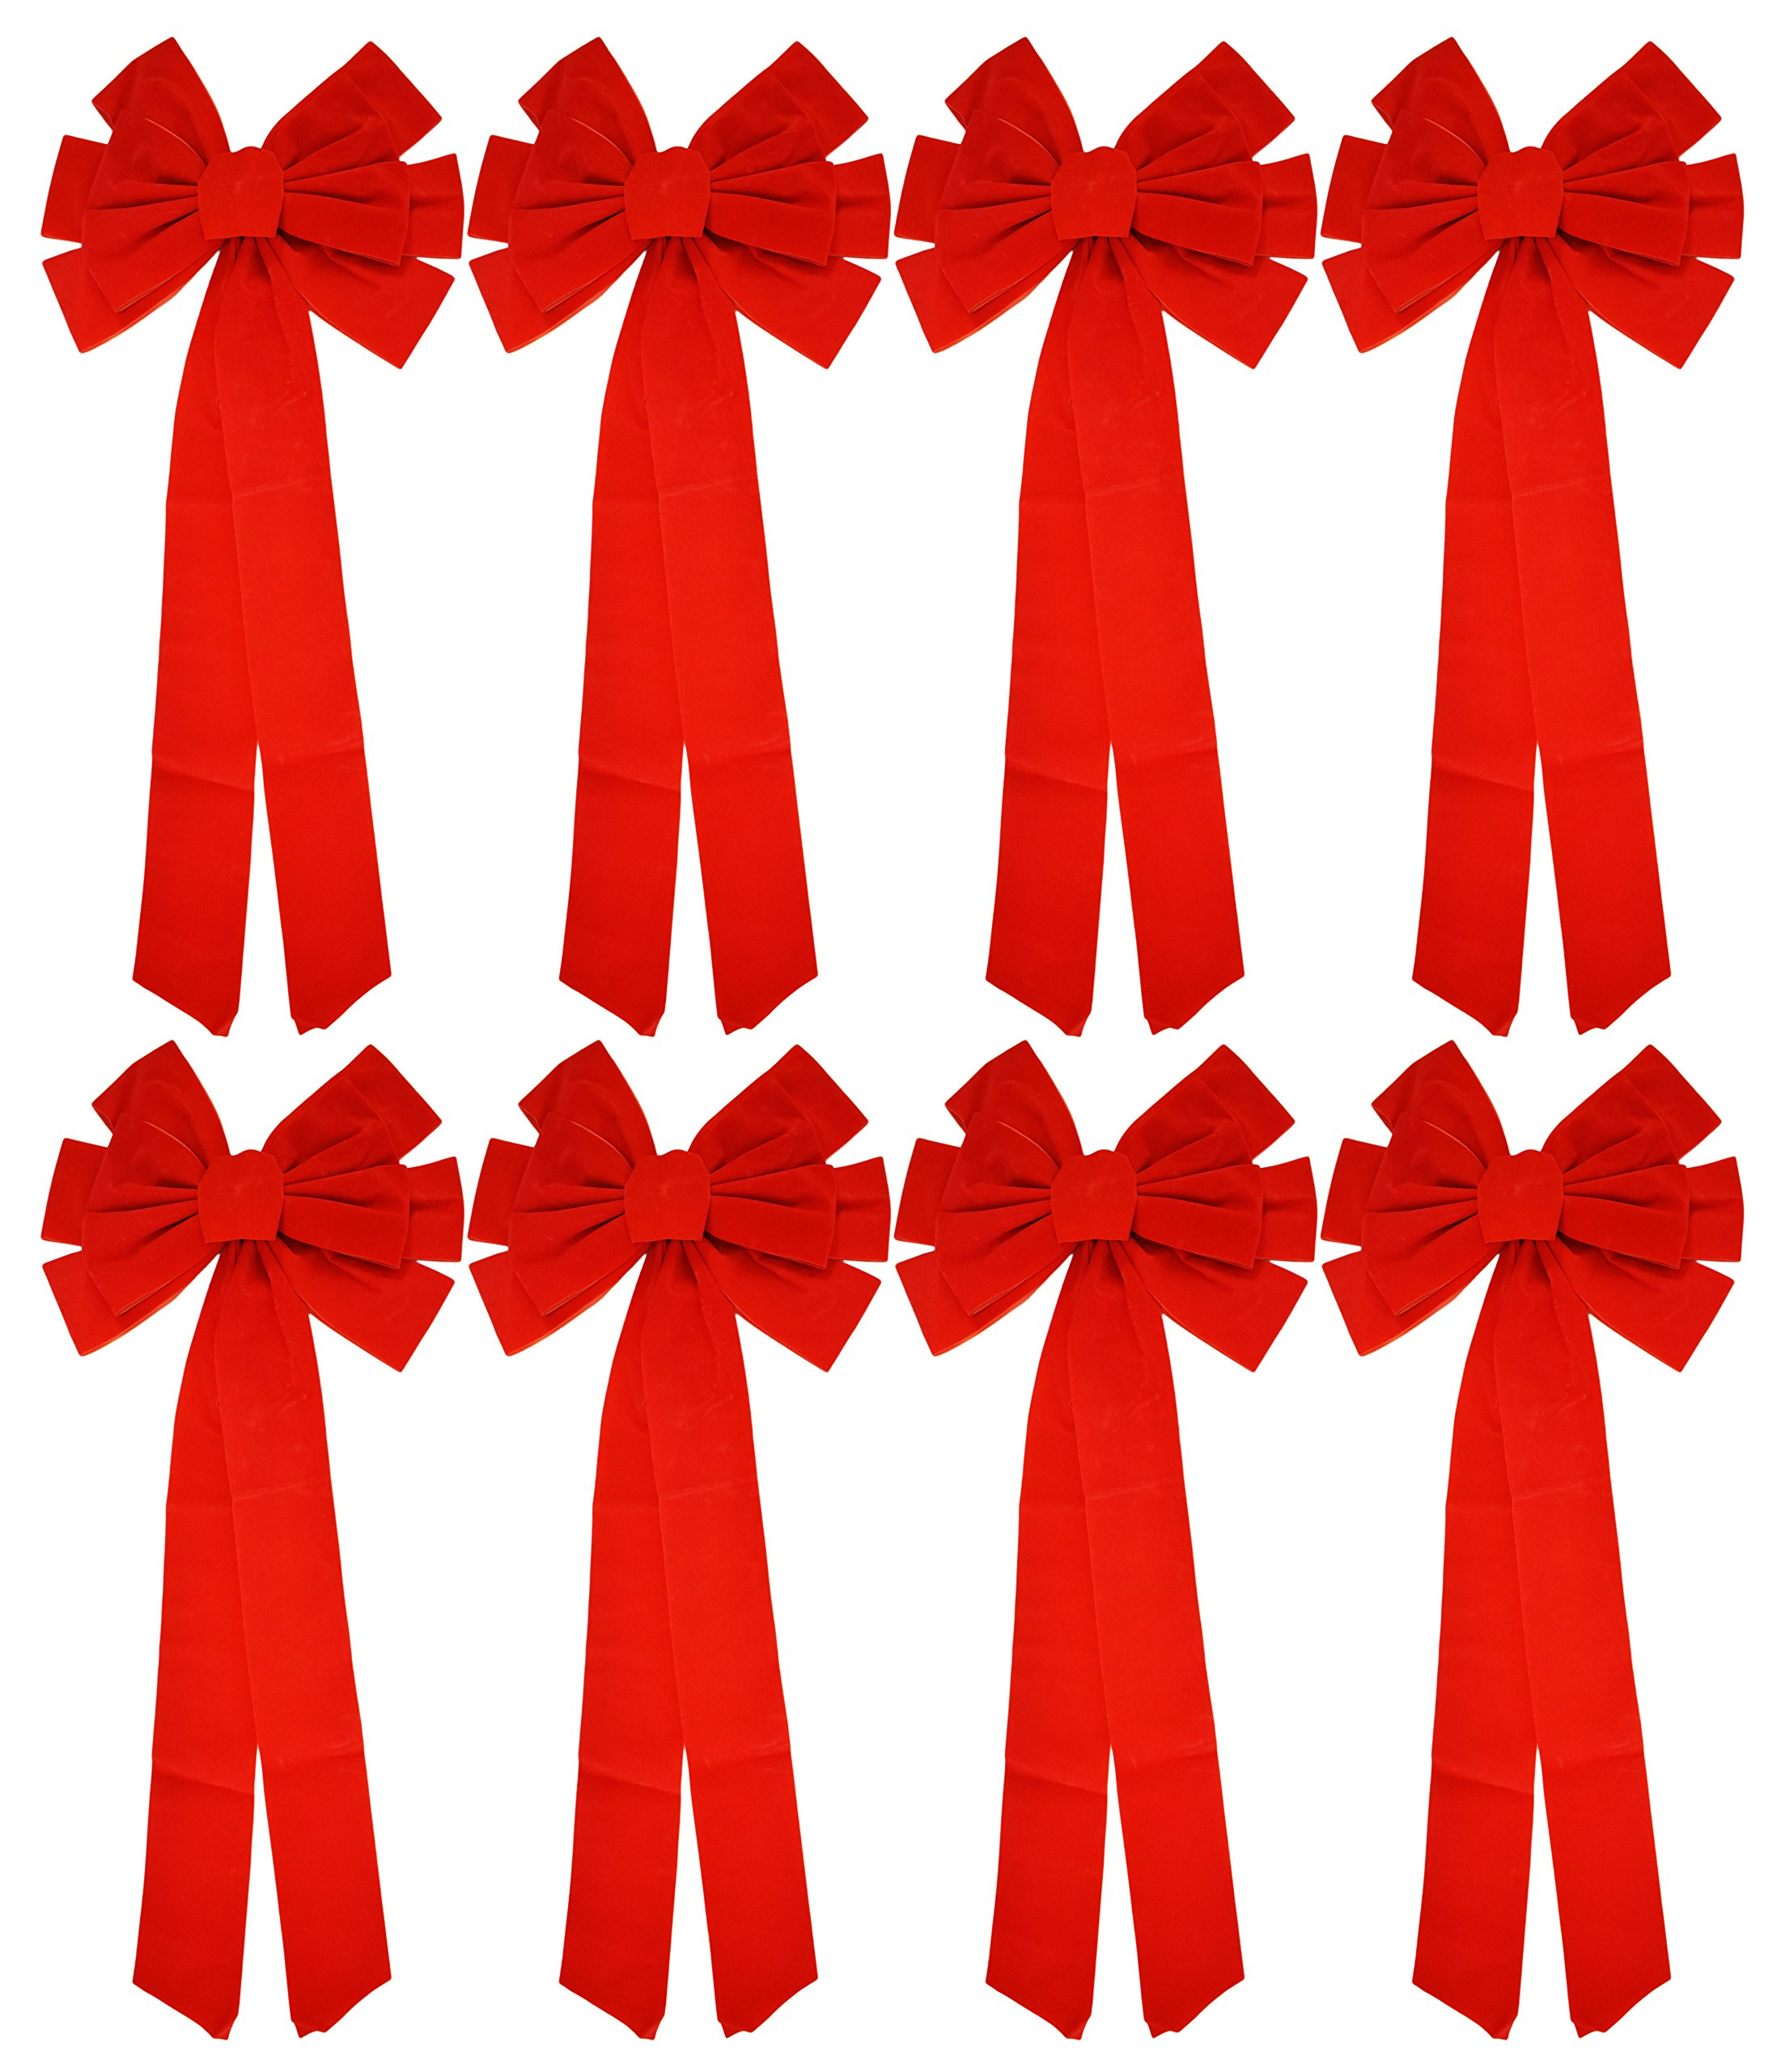 """26/"""" Long 10/"""" Wide 10 Bows Christmas Holiday Giant Red Velvet Bows"""